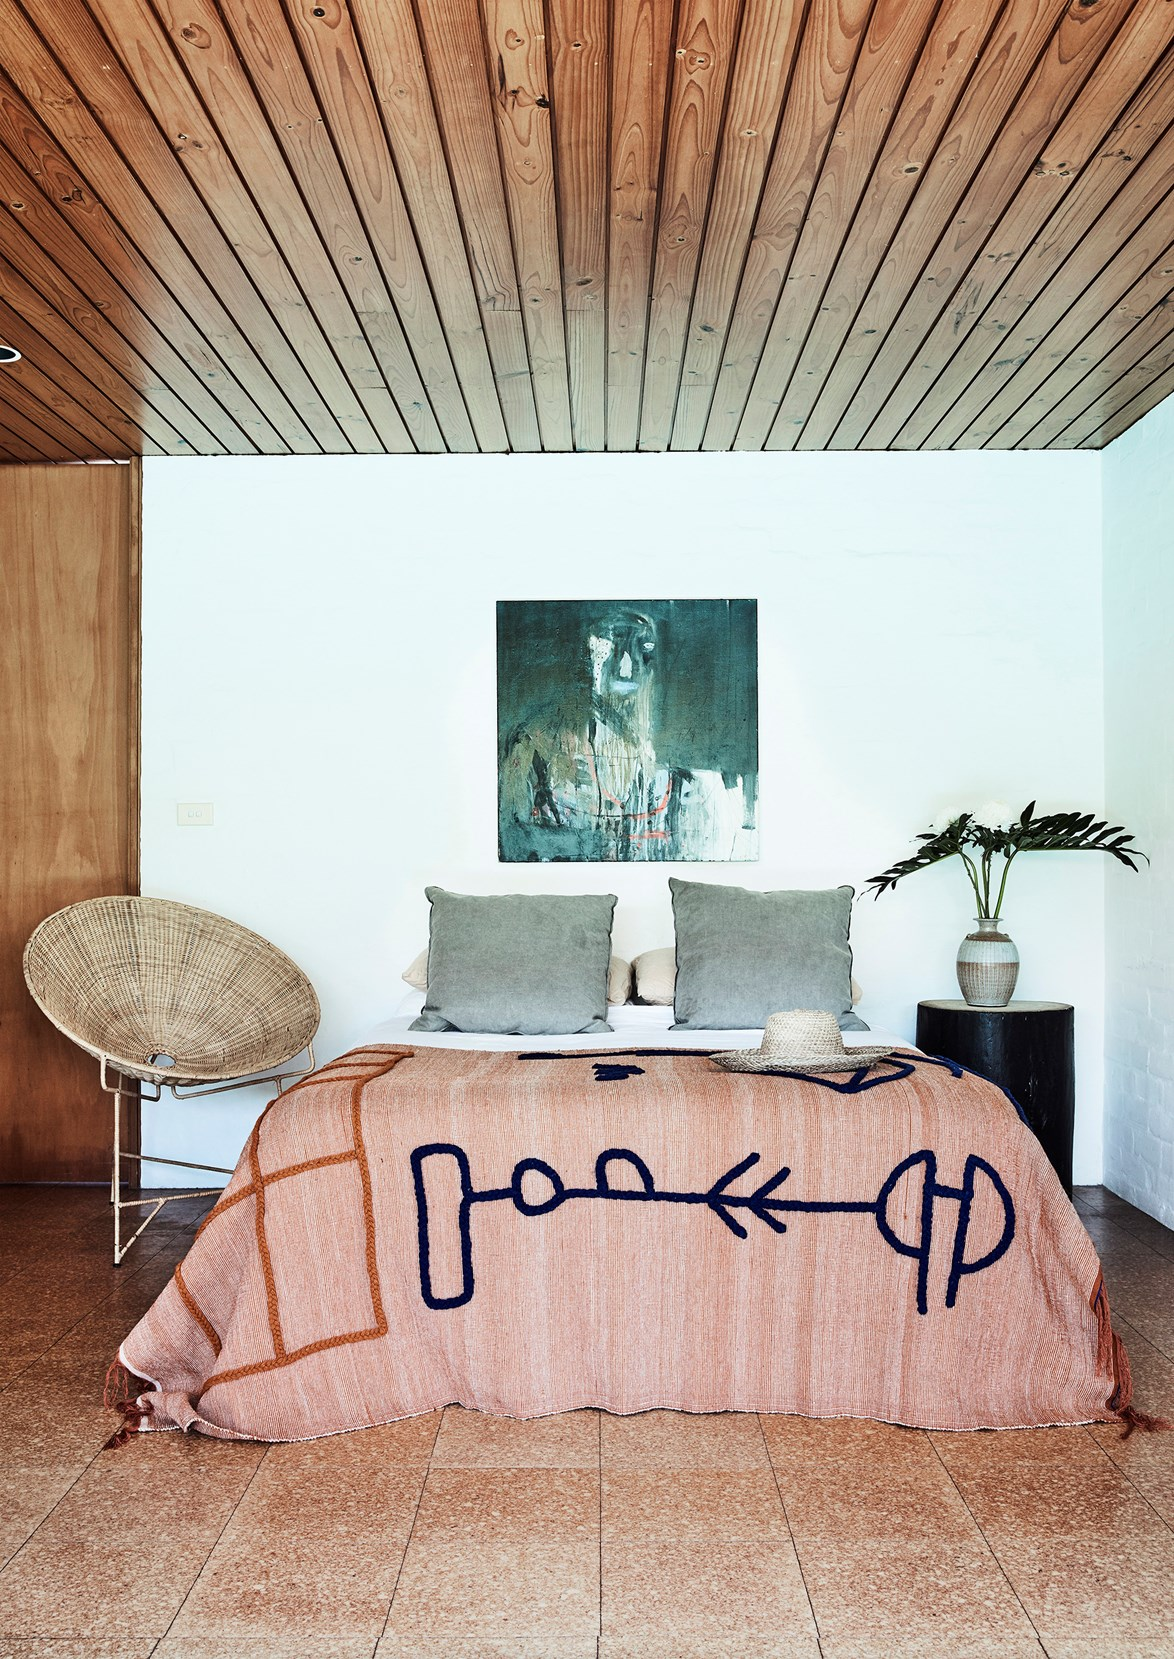 Less is more in the master bedroom of this modernist home in Sydney.